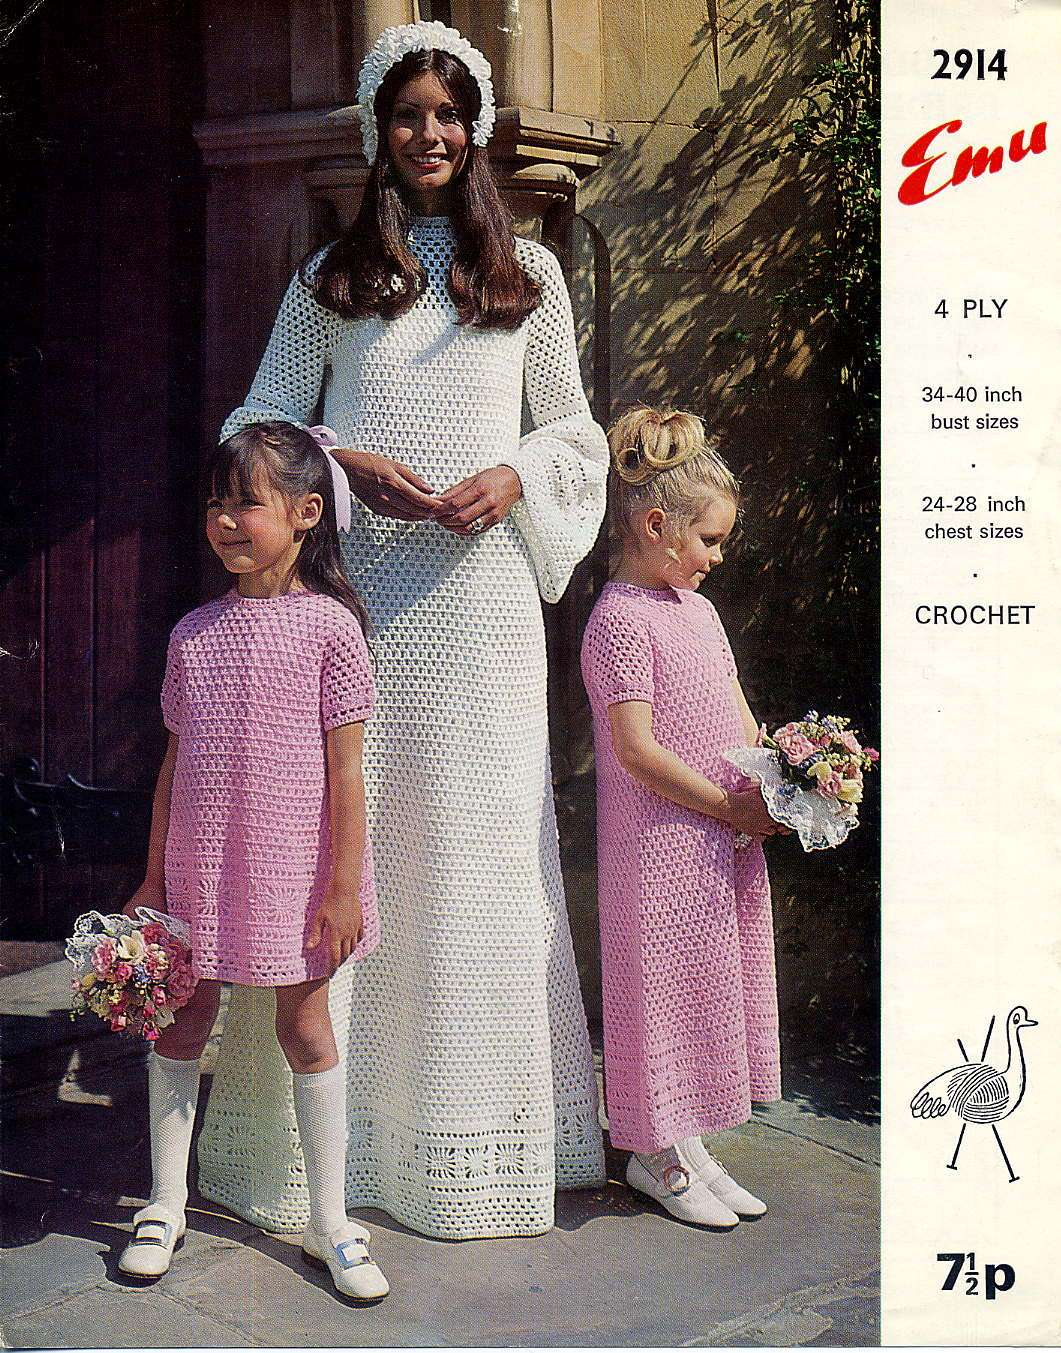 Knitting Now and Then: Wedding Dresses to Crochet